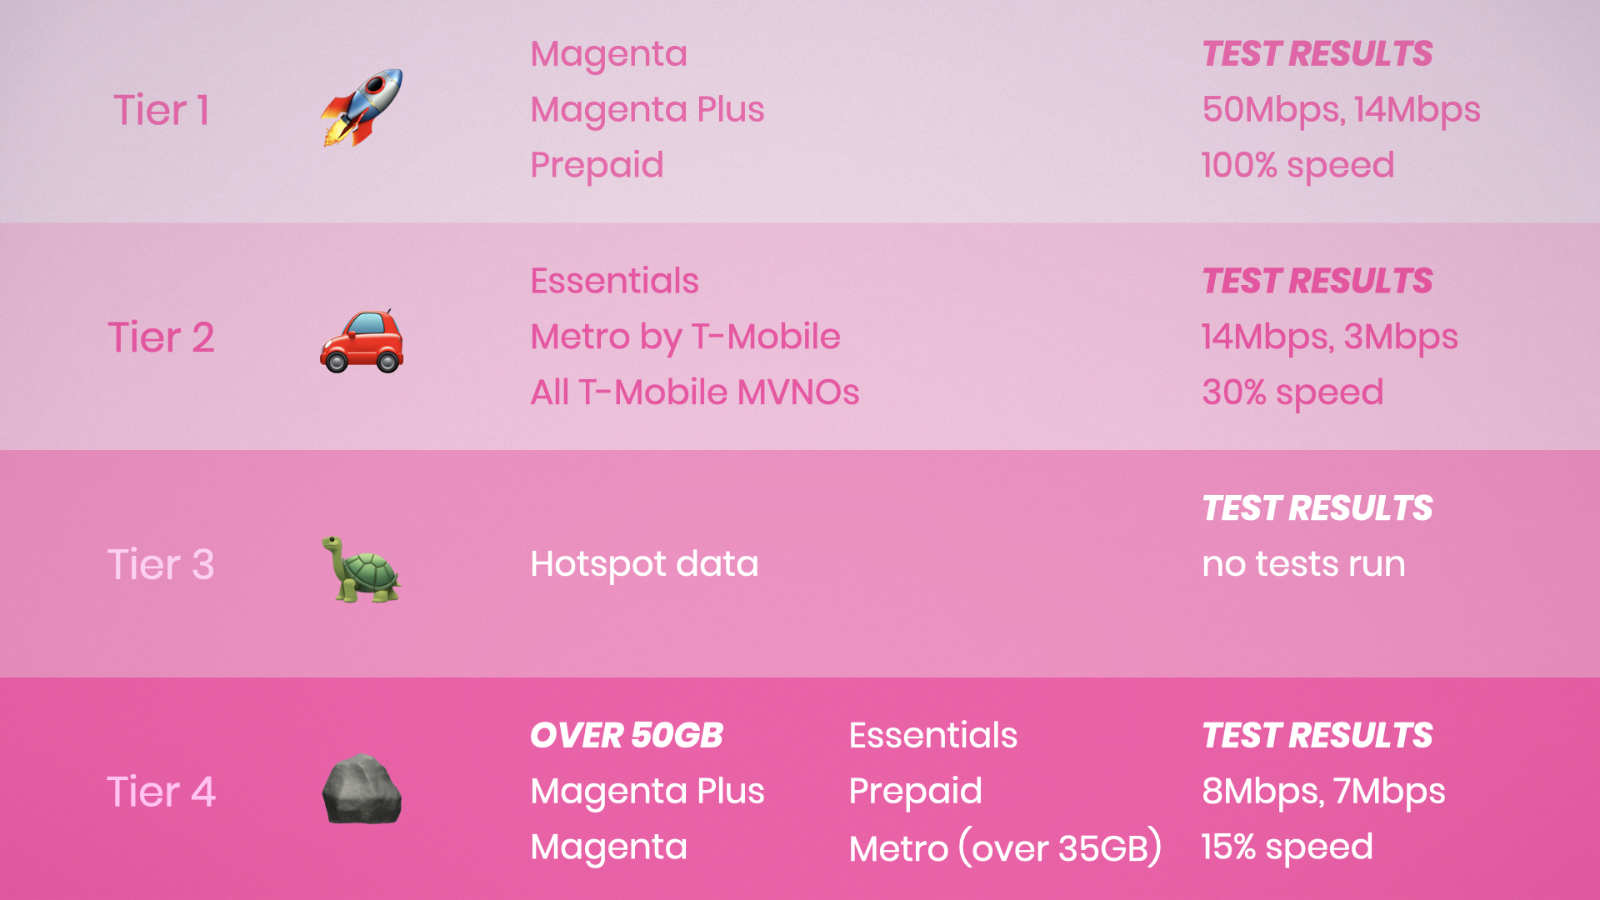 T-Mobile offers four tiers of data priority on their network